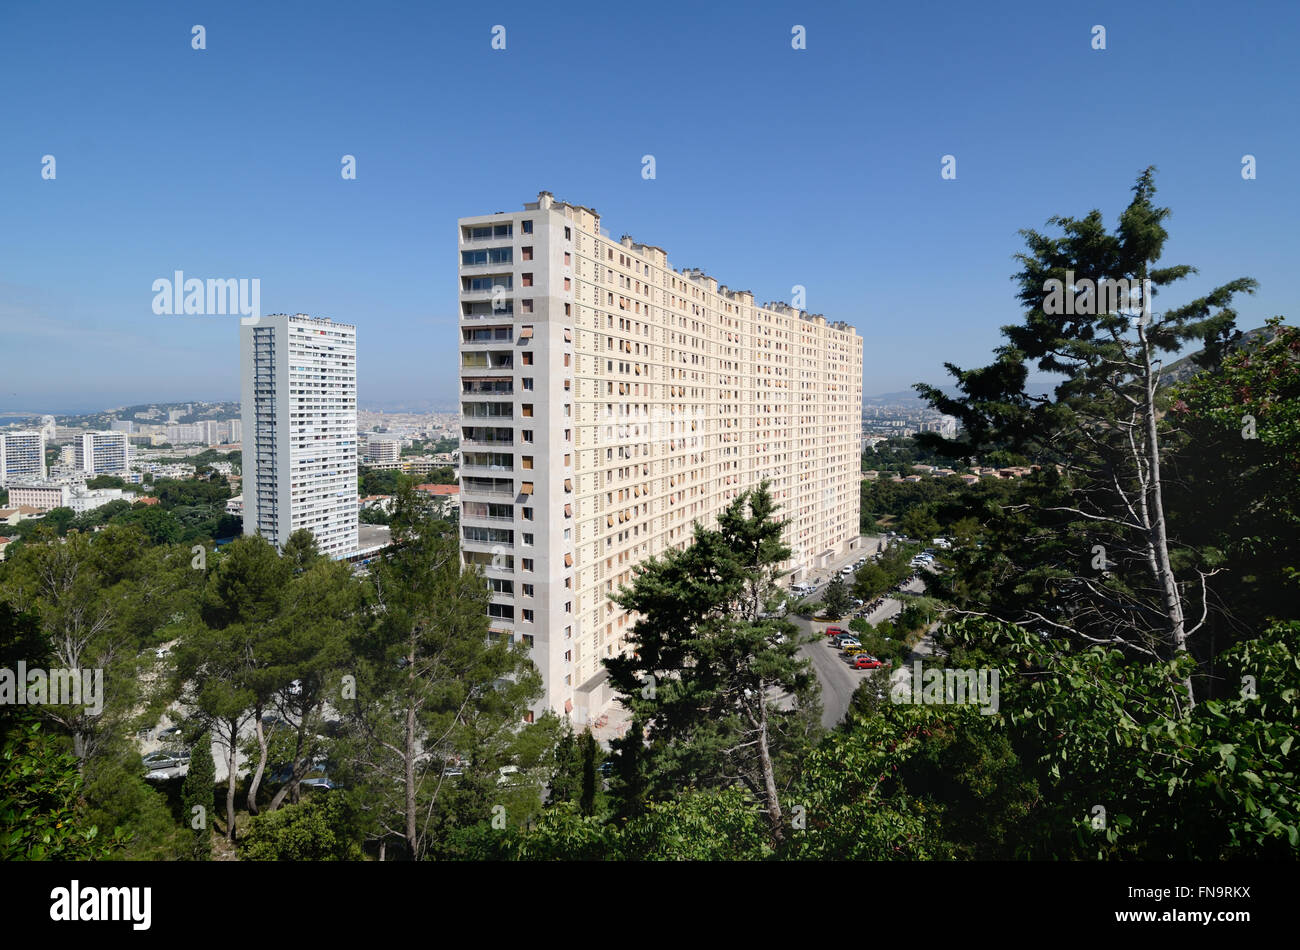 High-Rise Apartment Building or Tower Block in the Redon District of the Eastern Suburbs of Marseille or Marseilles - Stock Image